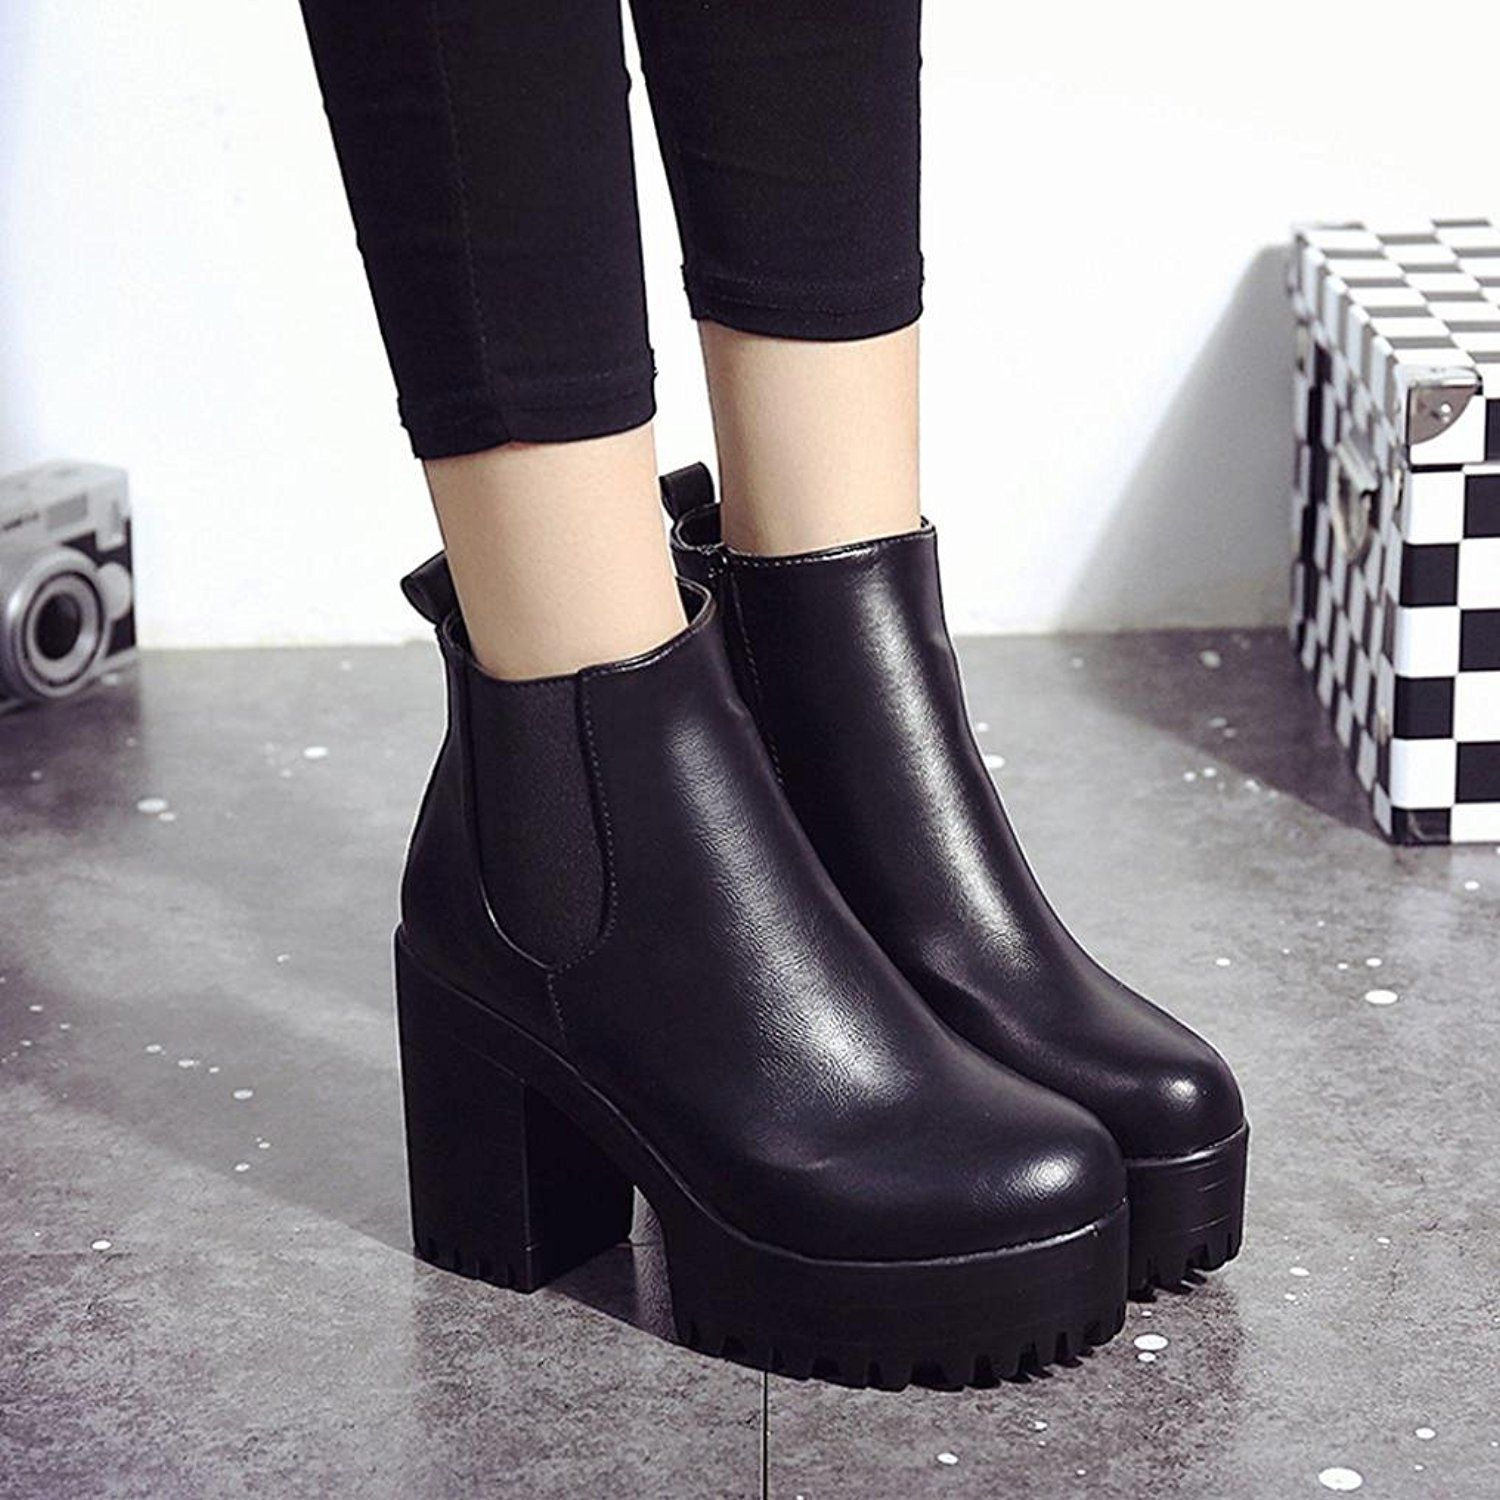 Women Platform Chunky High Heel Ankle Boots #ankleboots ankle ...